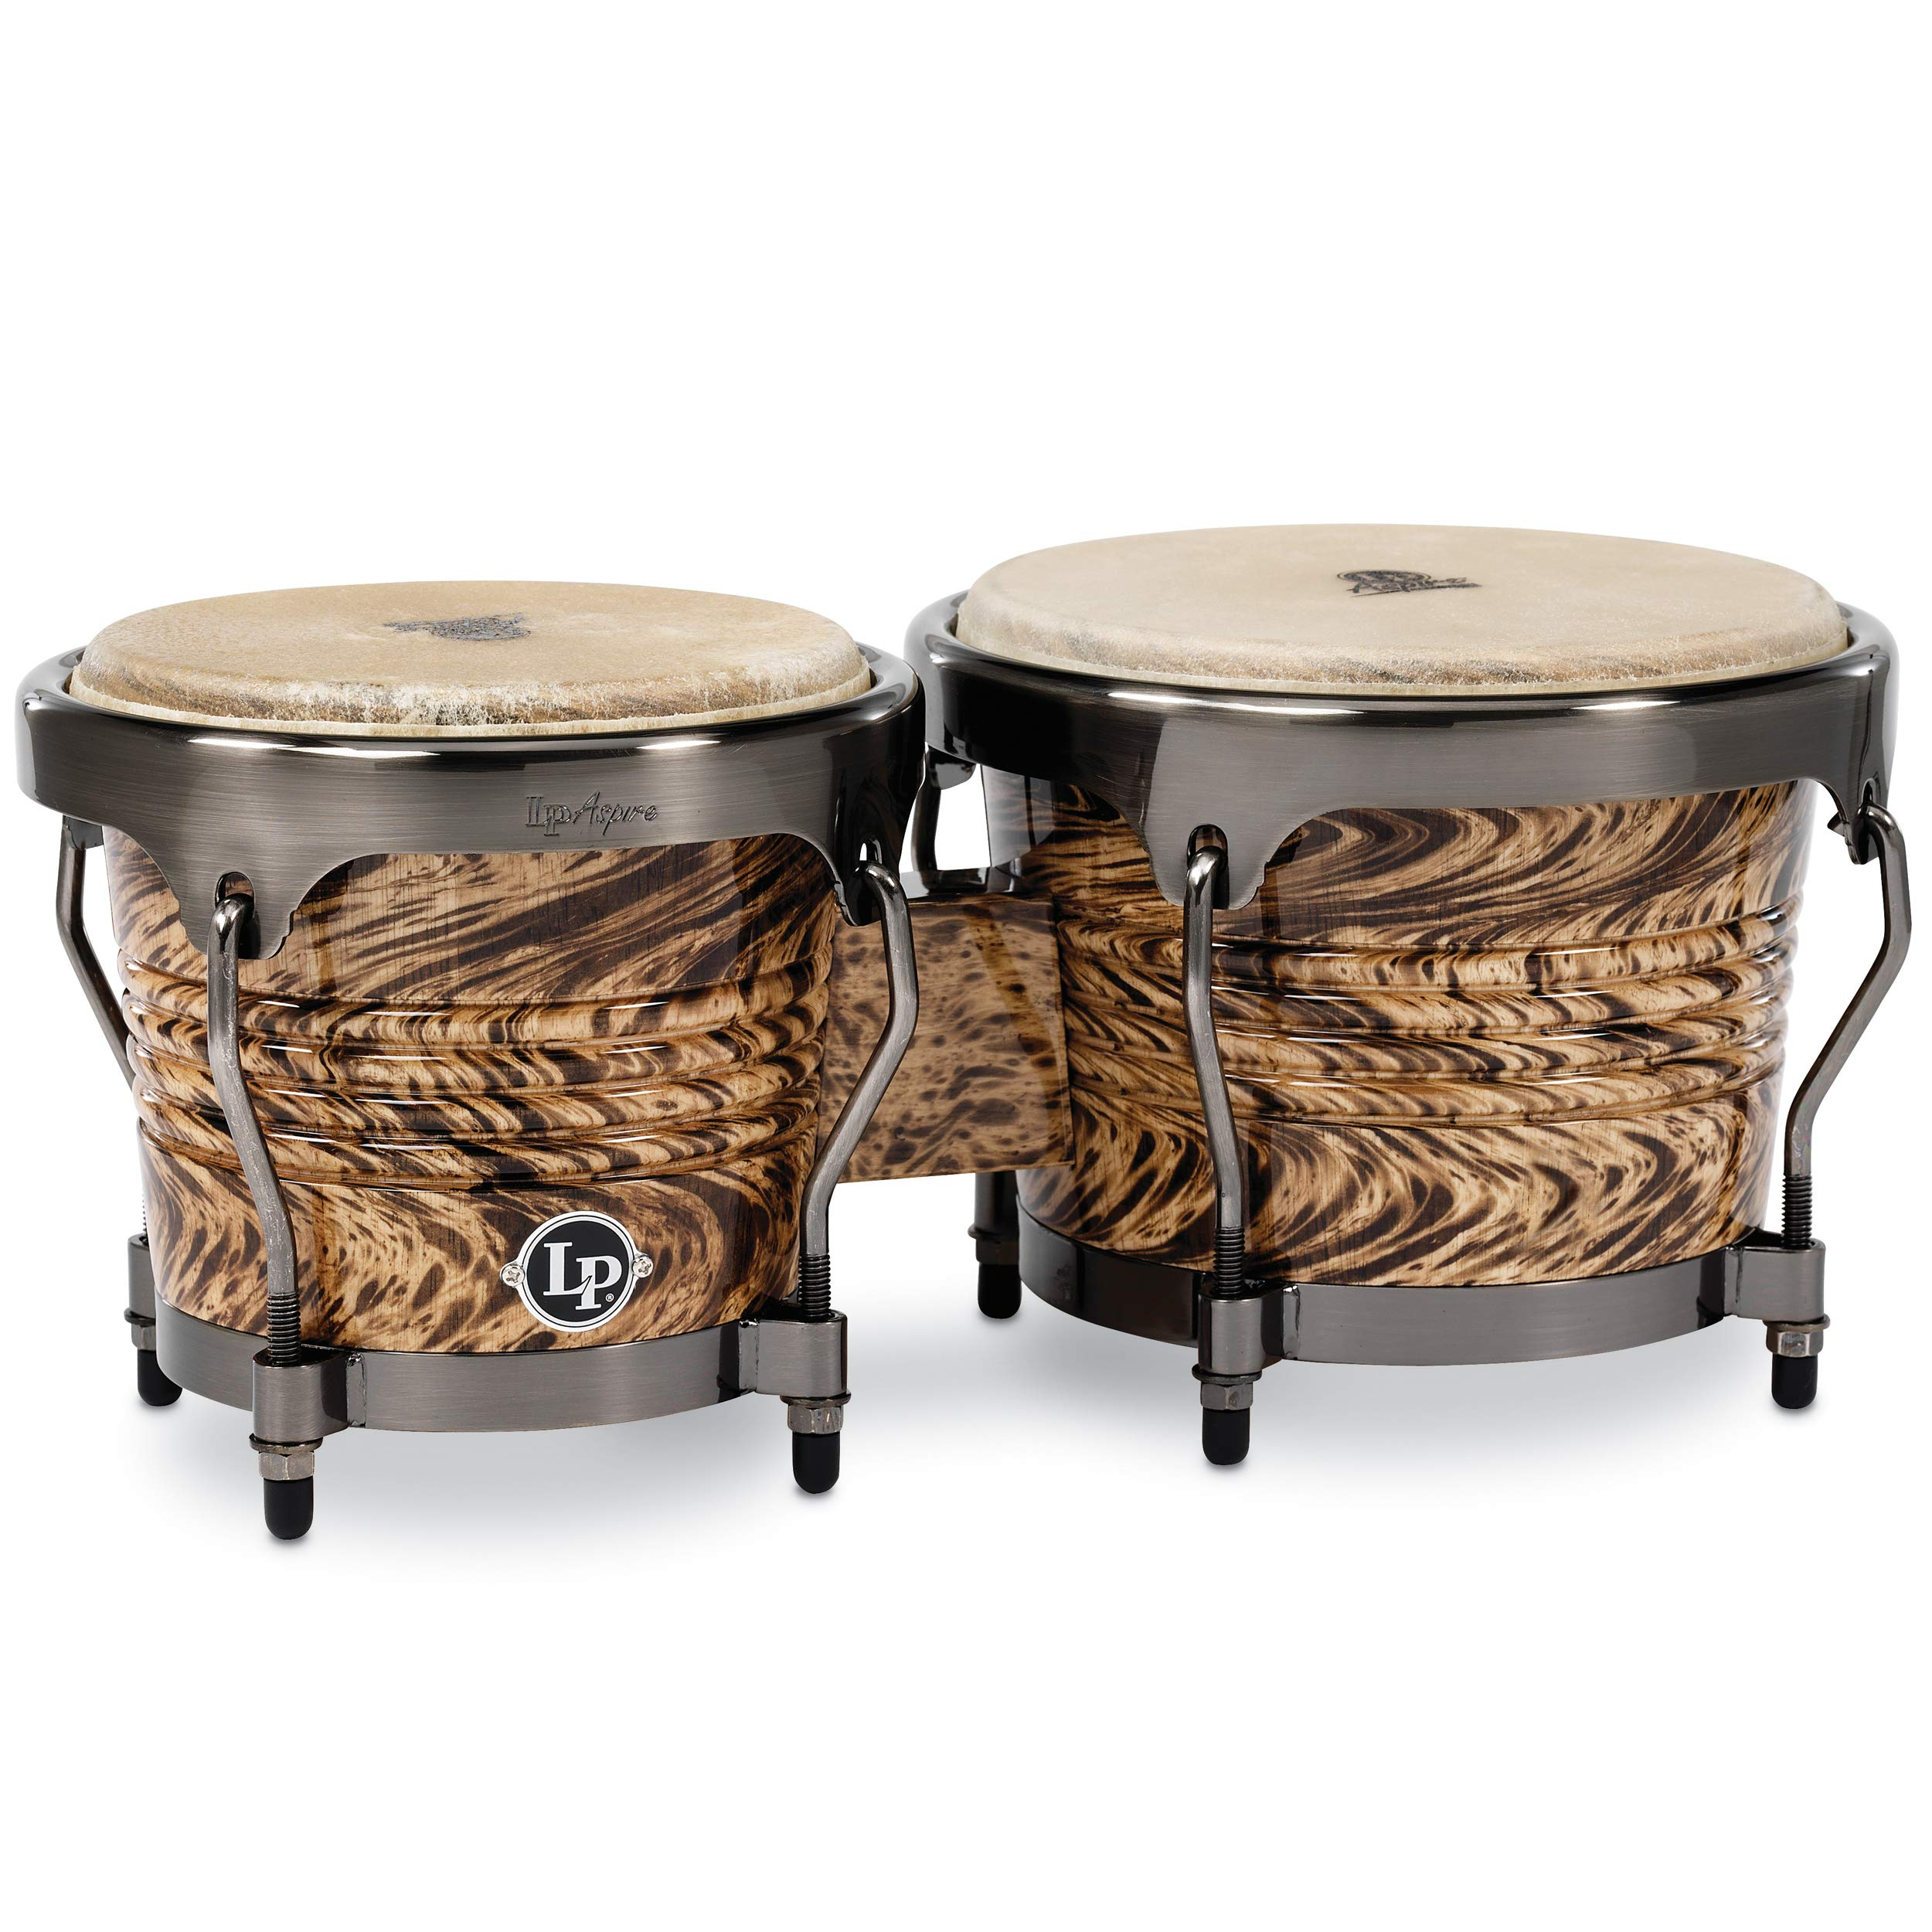 Latin Percussion Aspire Series Bongos - Havana Cafe with Brushed Nickel Hardware by Latin Percussion